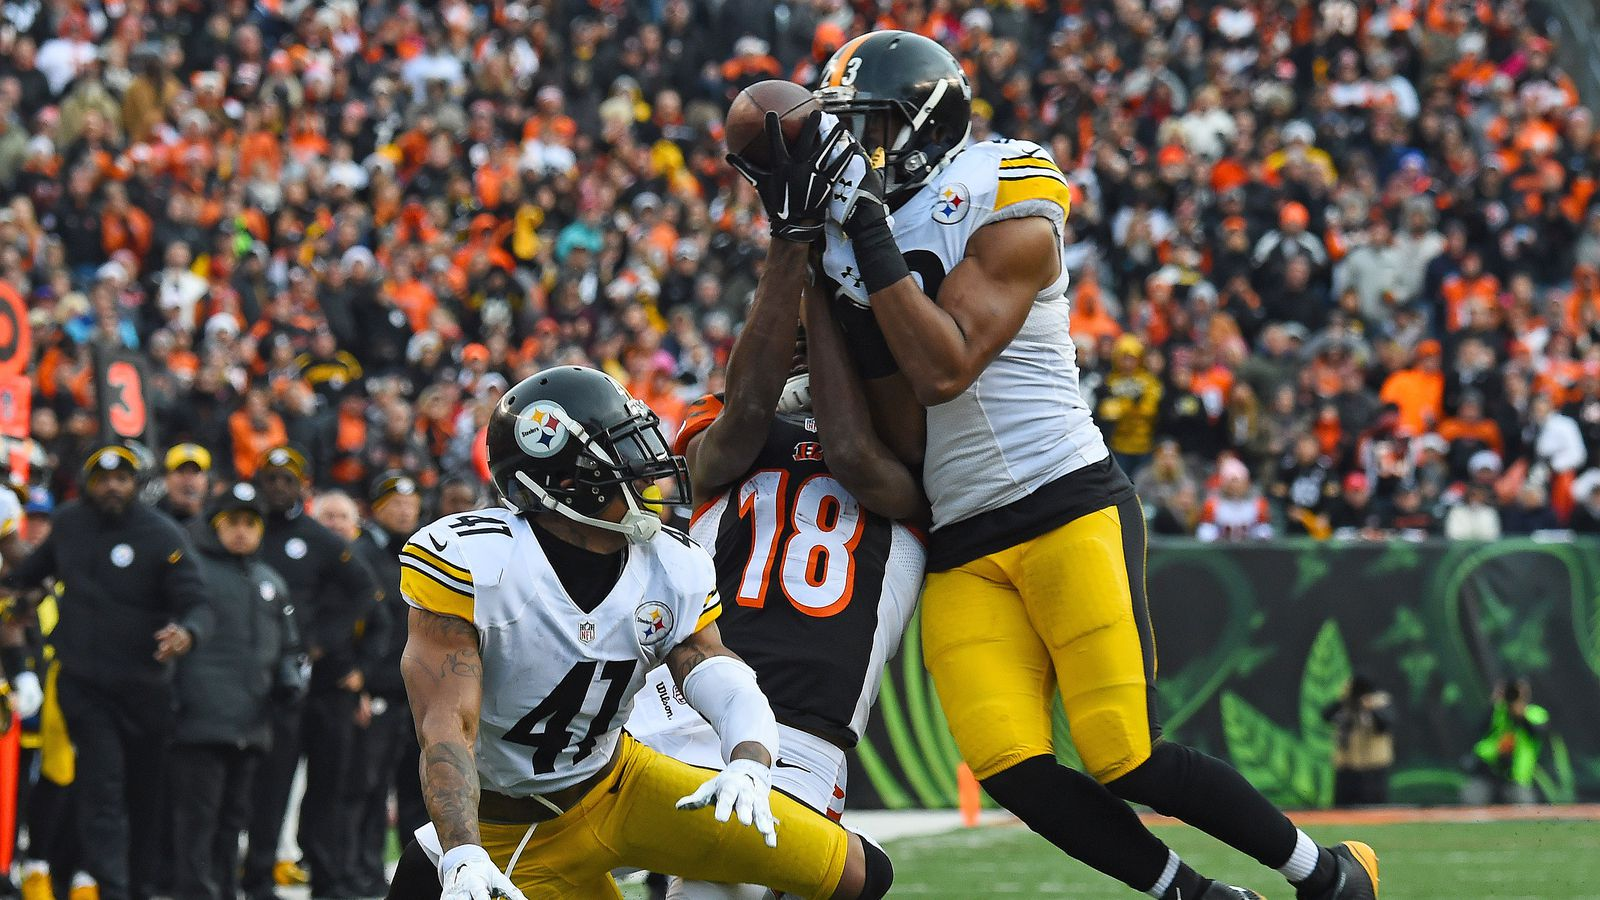 Steelers 2015 depth chart: Decisions to be made at safety ...Steelers Depth Chart